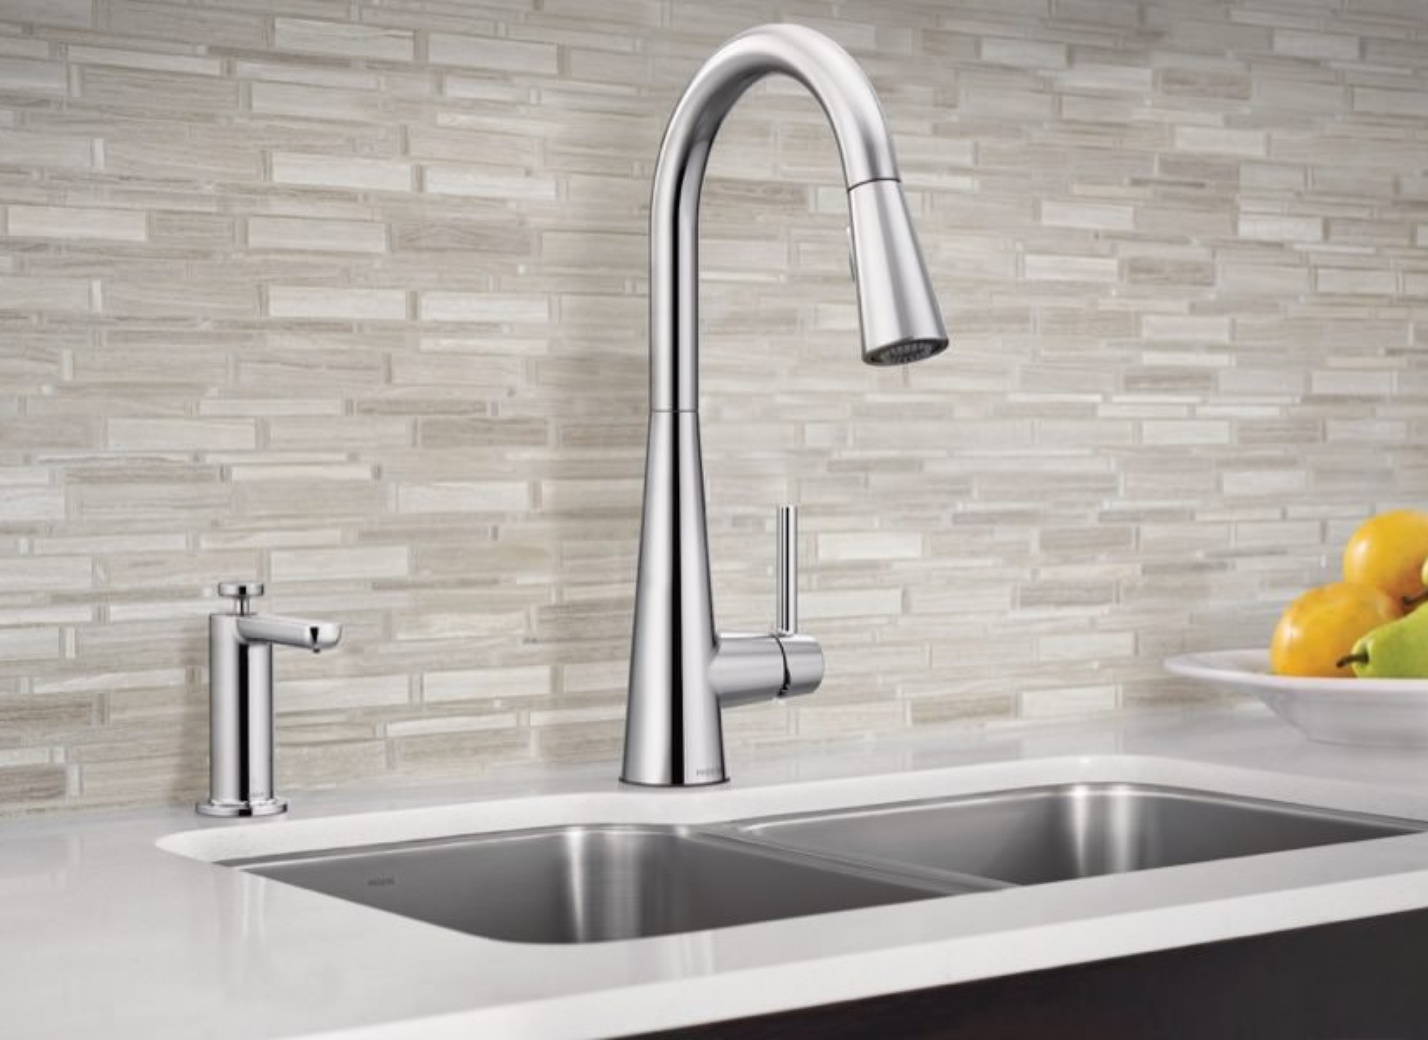 Tubs & Plumbing Fixtures in New Jersey